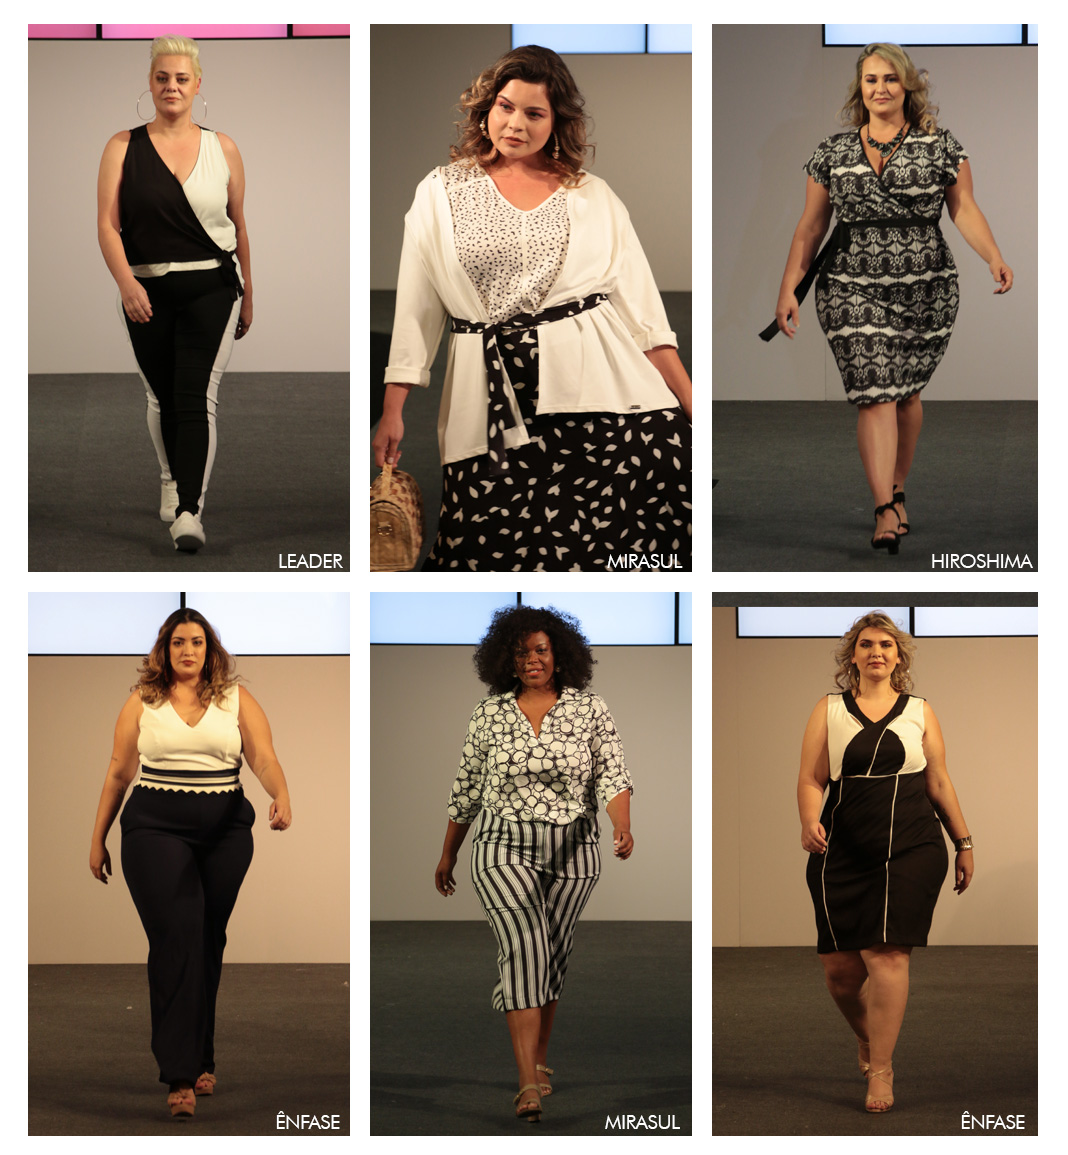 criaturagg-fwps19-fashion-weekend-plus-size-2019-moda-gg-preto-e-ebranco-tendencia-verao